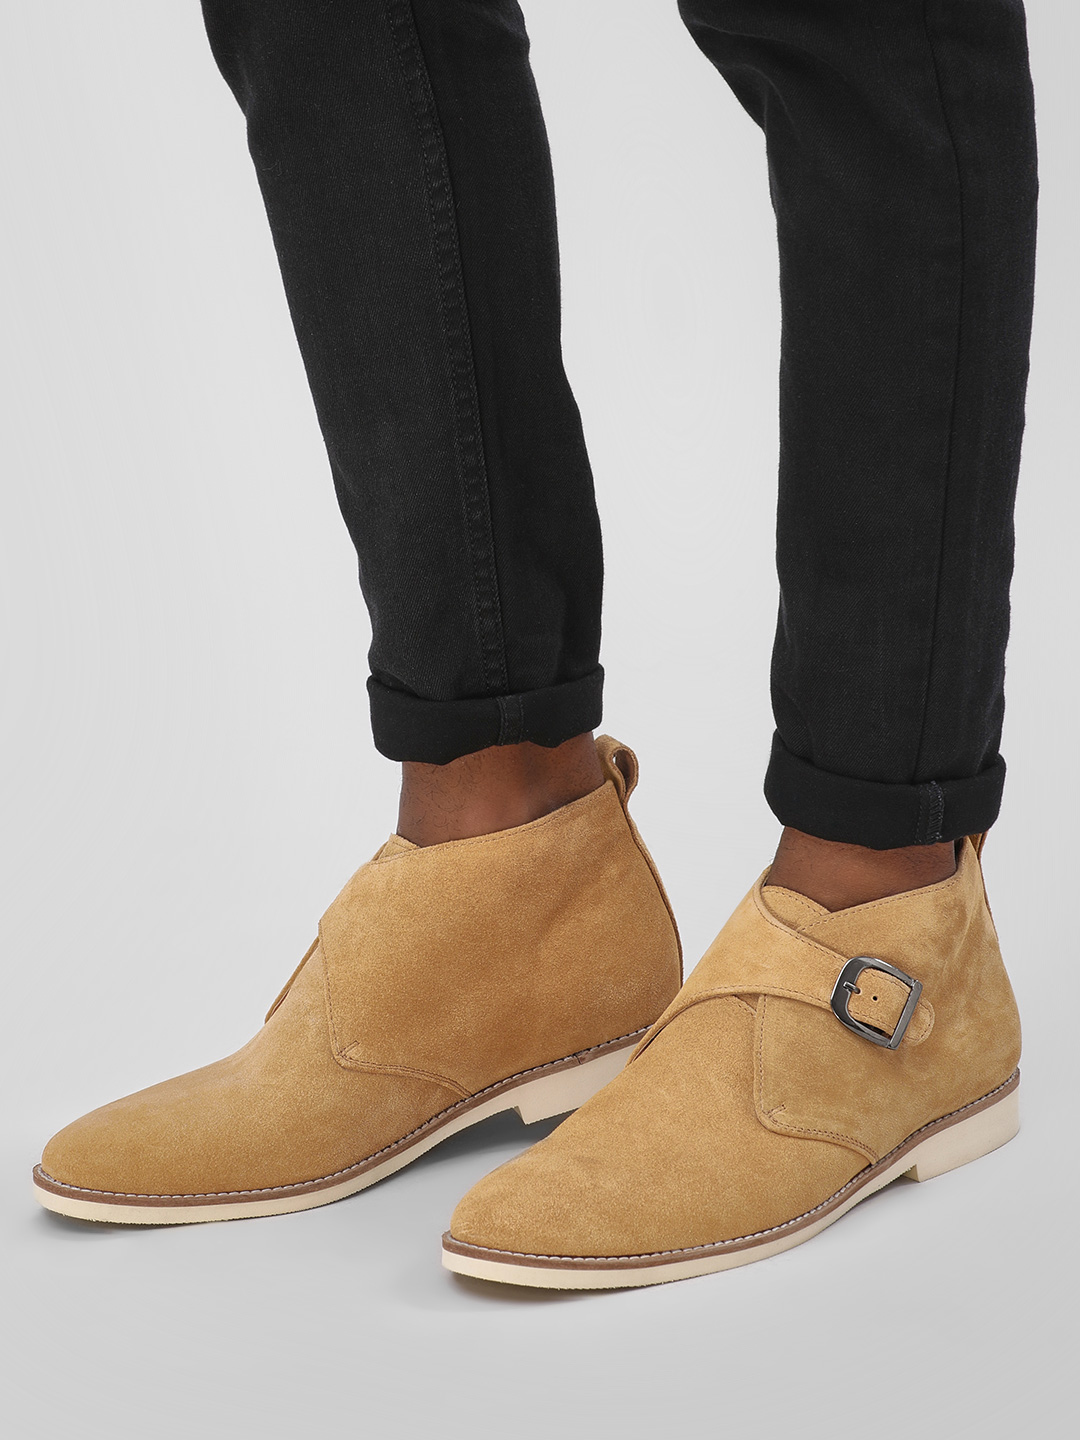 Griffin Brown Suede Overlap Ankle Boots 1